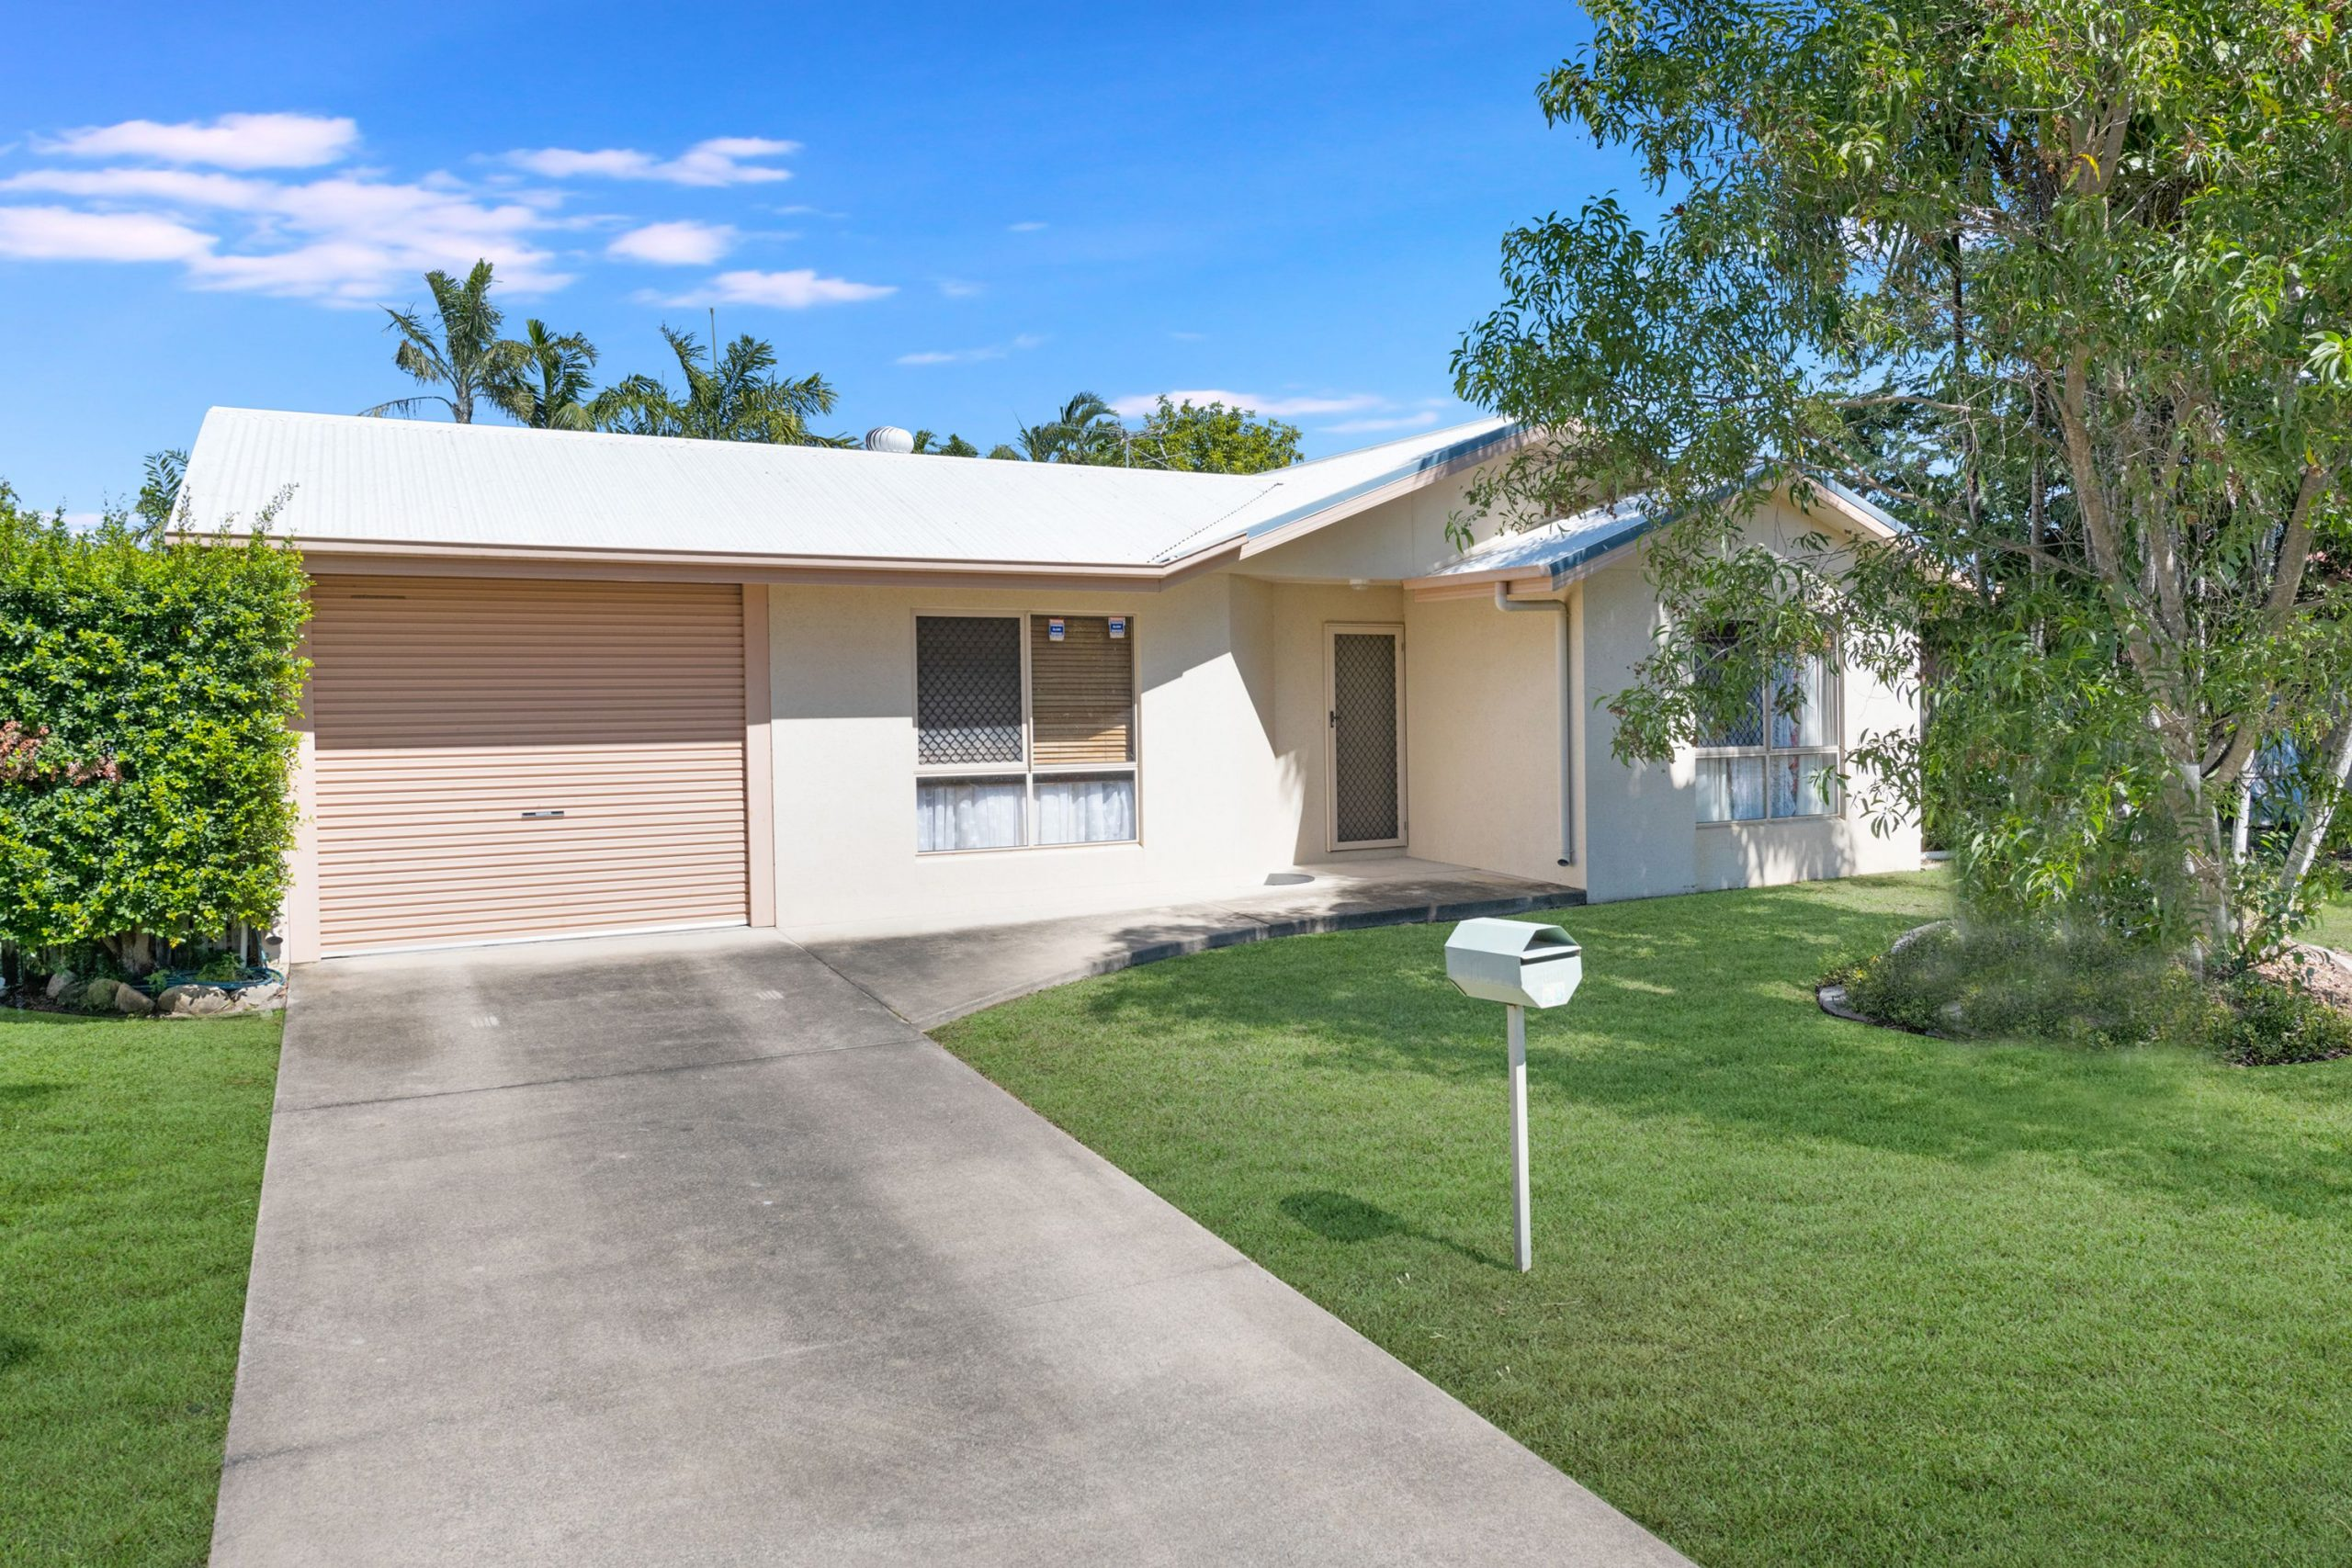 What a cutie….so neat & tidy is this 4 bedroom home with a huge back patio